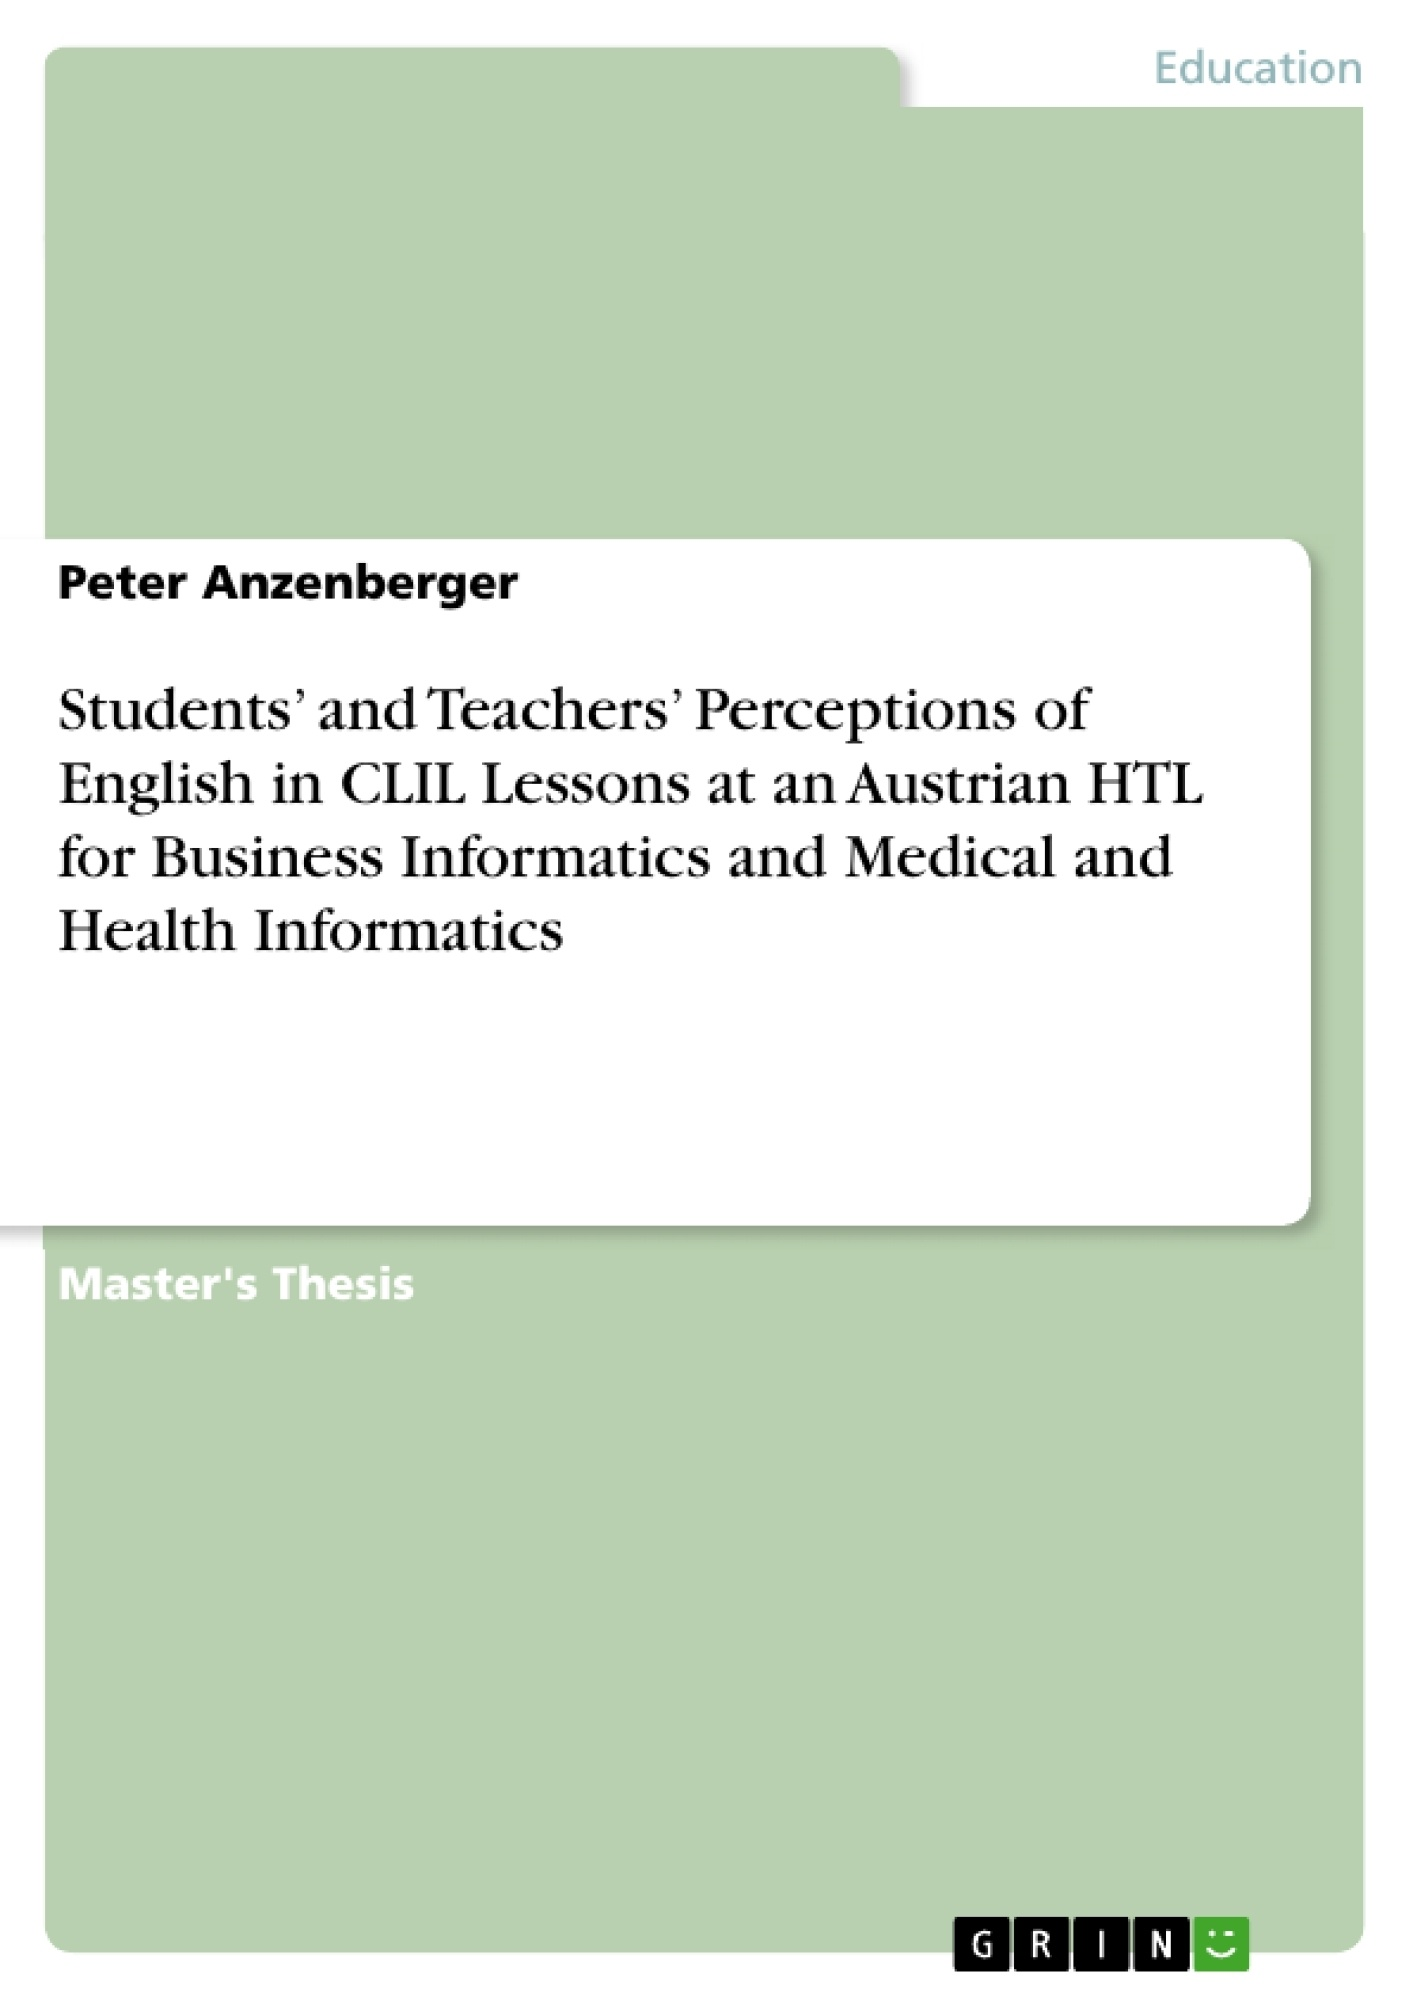 Title: Students' and Teachers' Perceptions of English in CLIL Lessons at an Austrian HTL for Business Informatics and Medical and Health Informatics